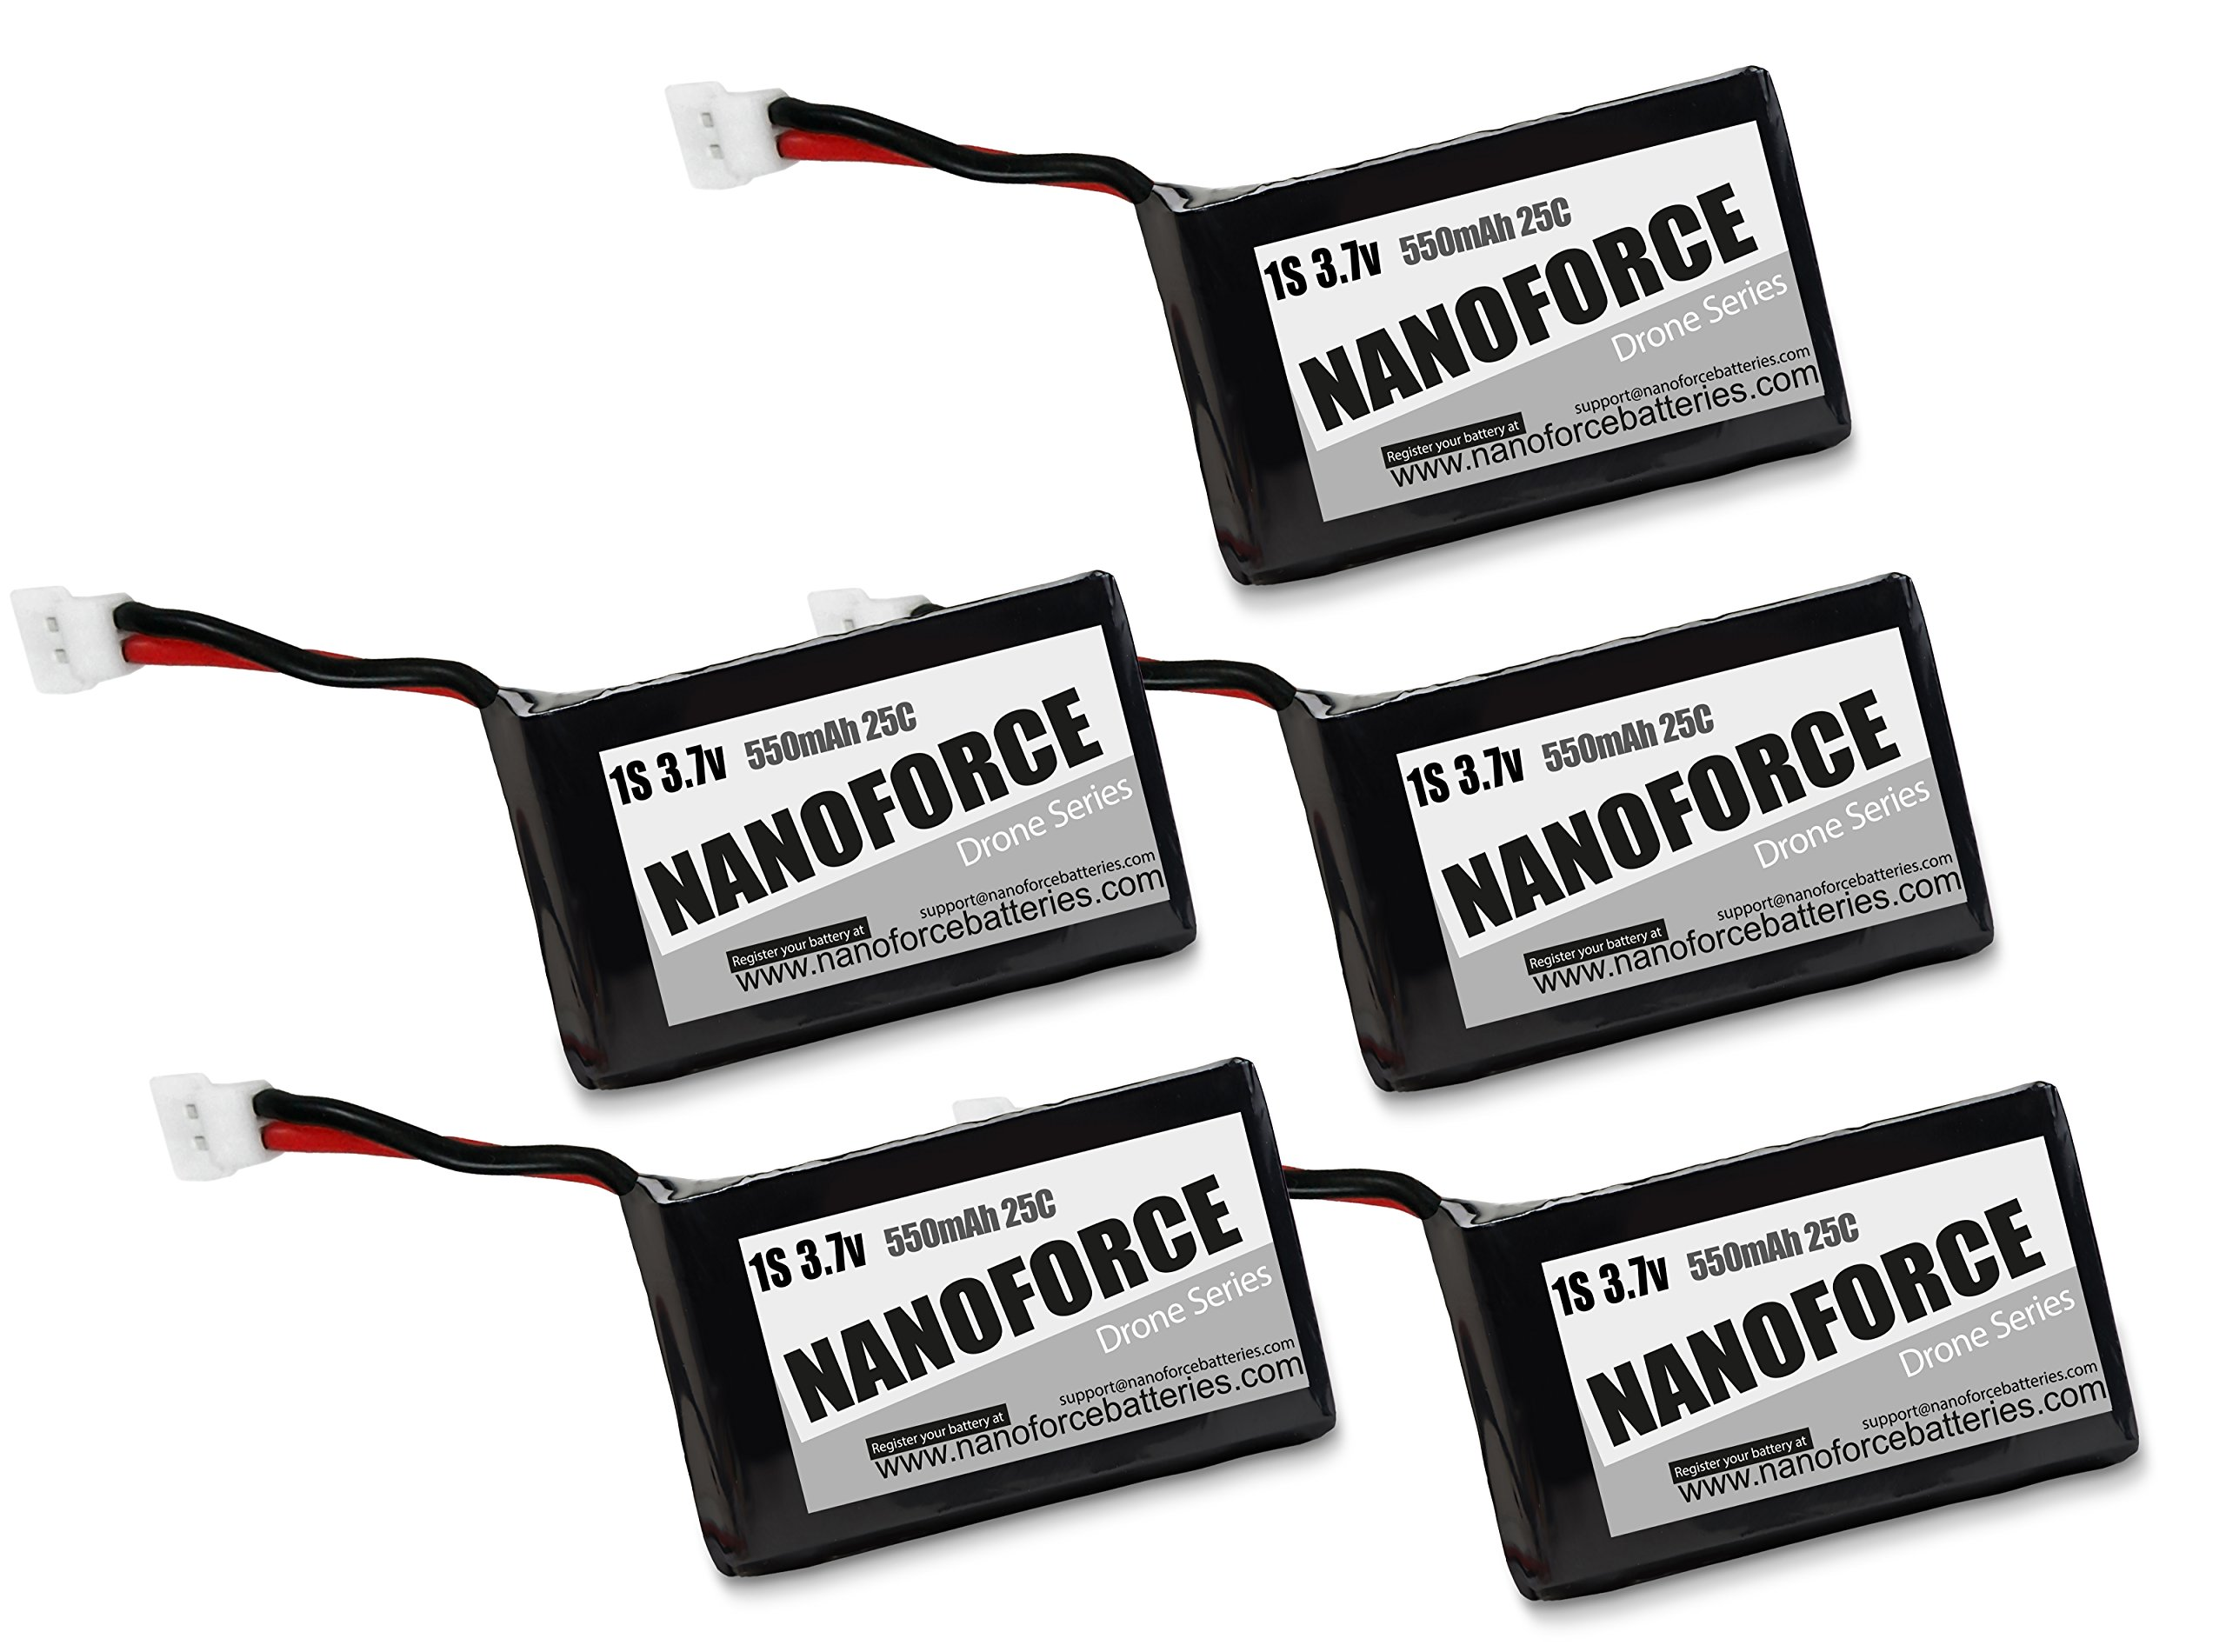 1S 3.7V Lipo 550mah 25C Batteries,Works with Syma X5C, X5SC, X5SW, X5A, Cheerson CX-30W, M68, M68R Quadcopter Drones. (5-Pack)